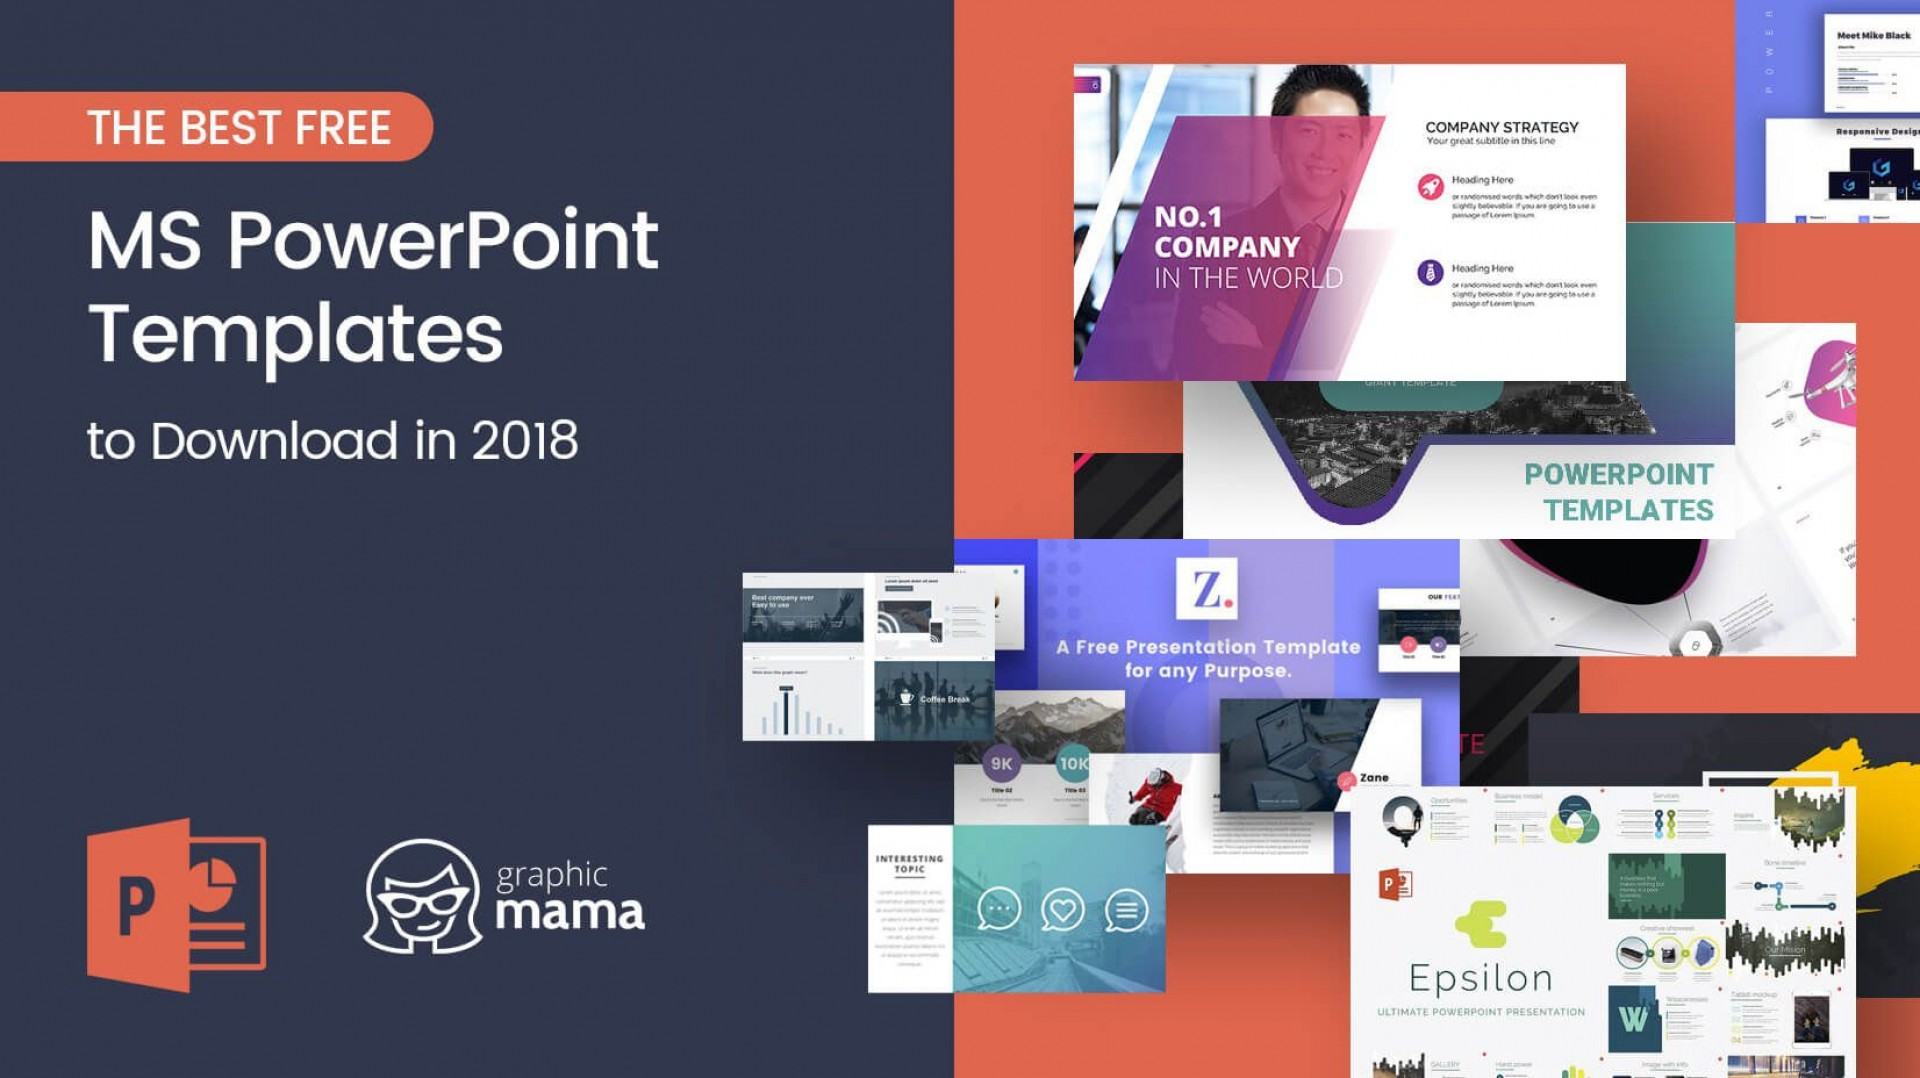 008 Surprising Free Download Powerpoint Template Design  Templates Medical Theme Presentation 20181920